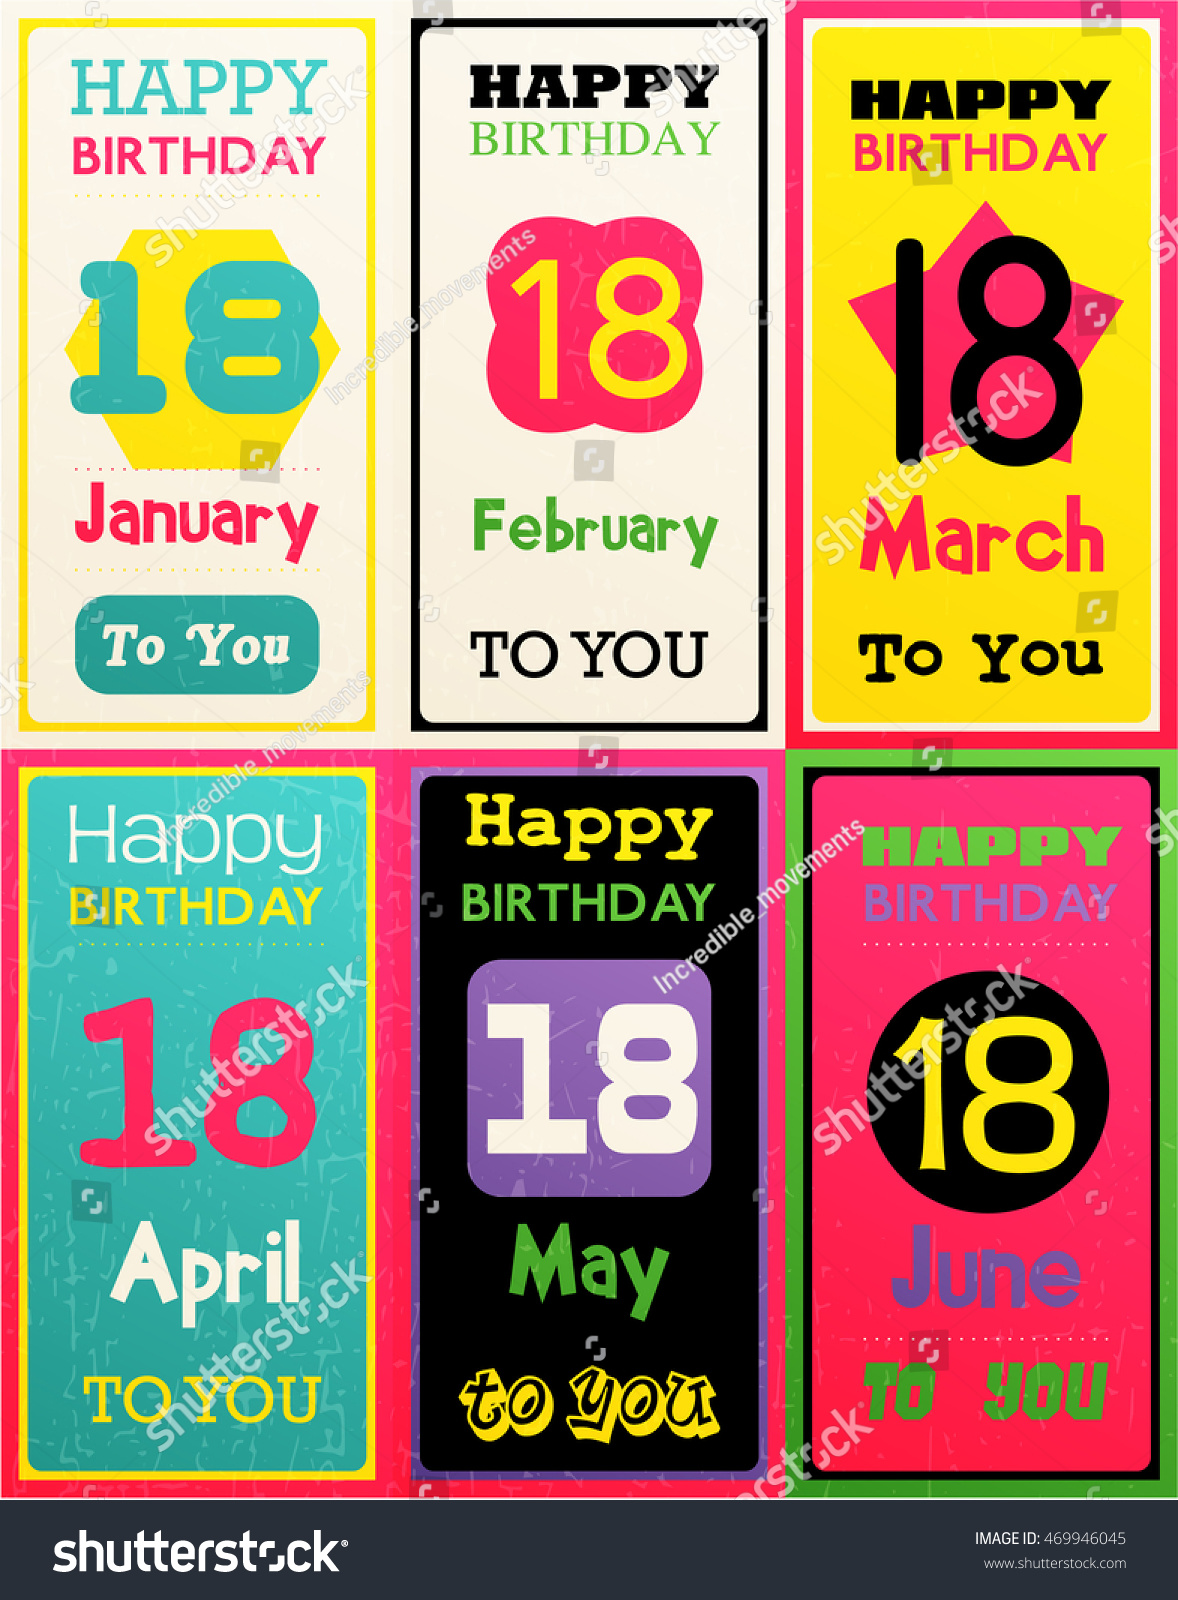 Greeting Happy Birthday Card Date Eighteen Of Birth By Month January February March April May June Vector Illustration Set Six Gift Banners